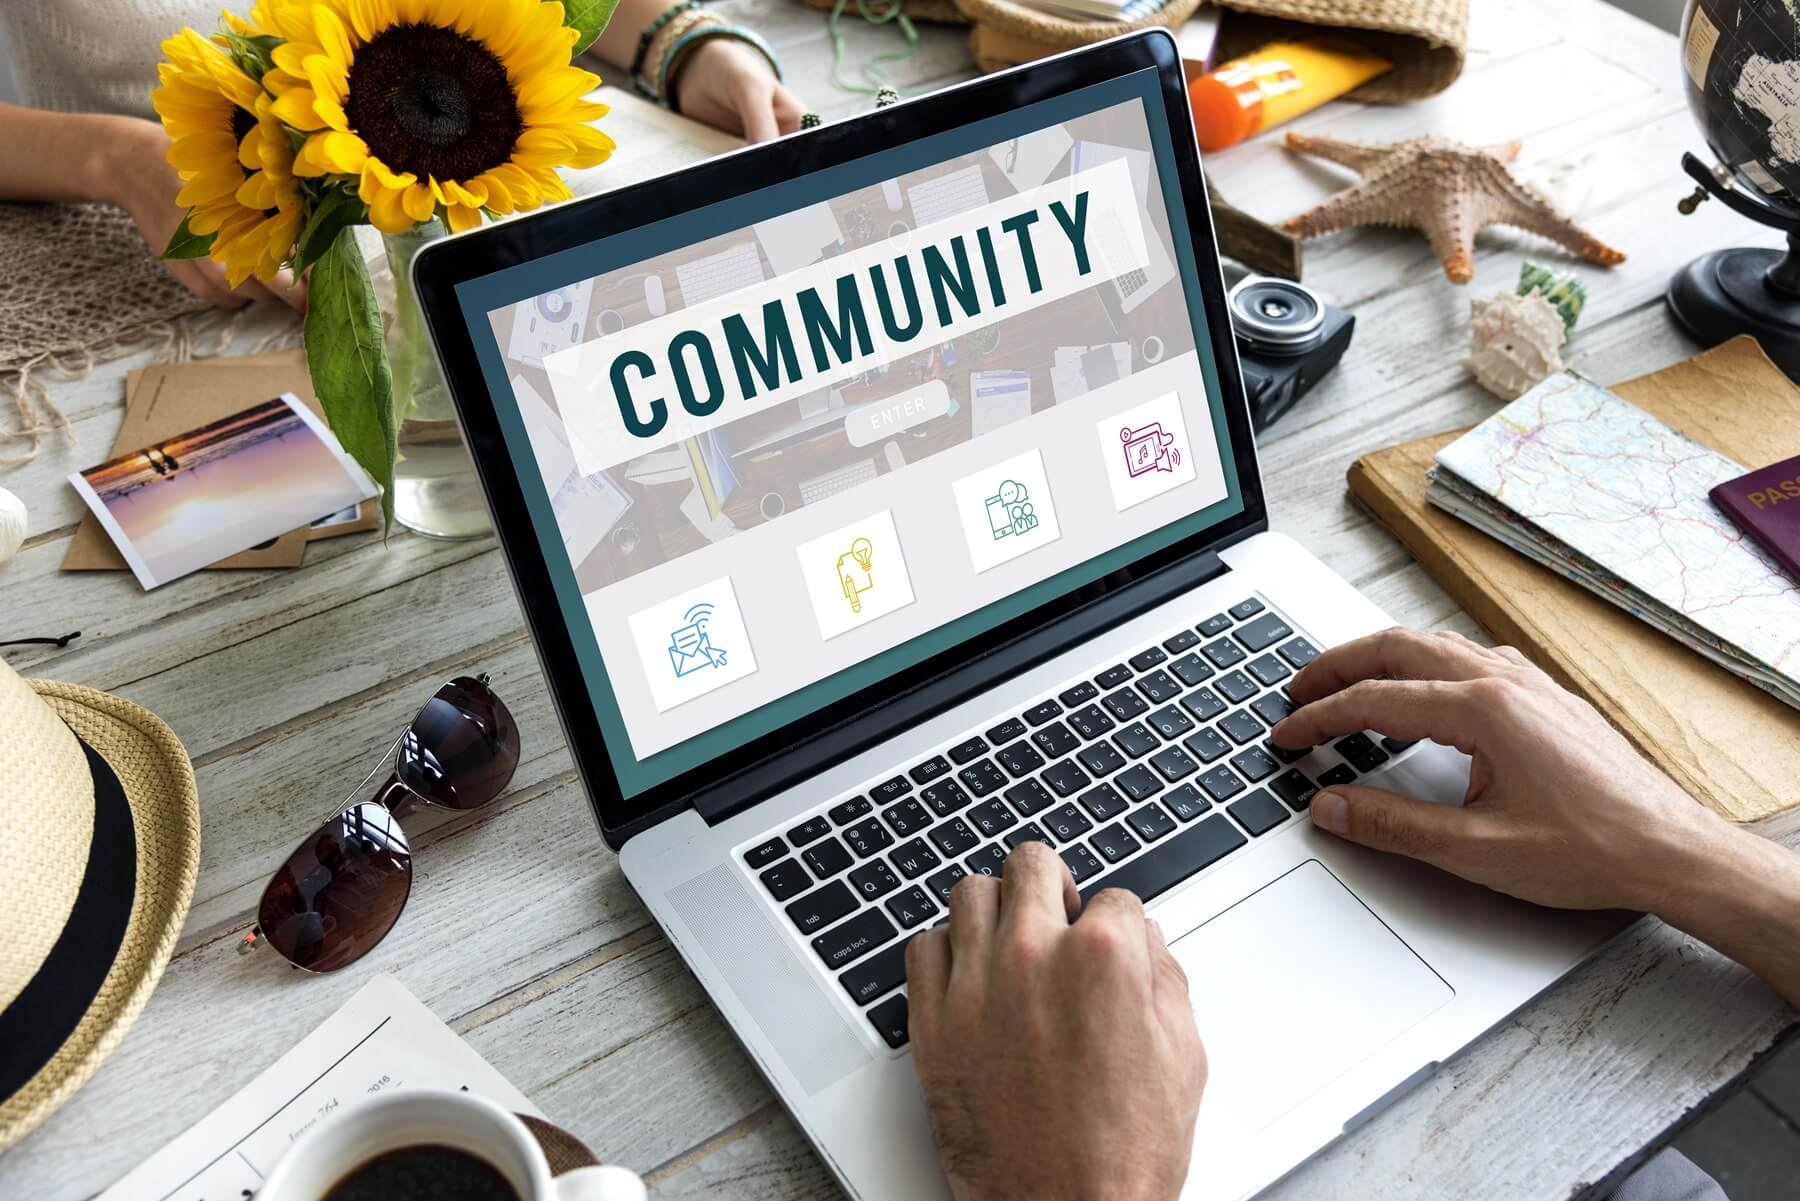 What communities are you a part of?